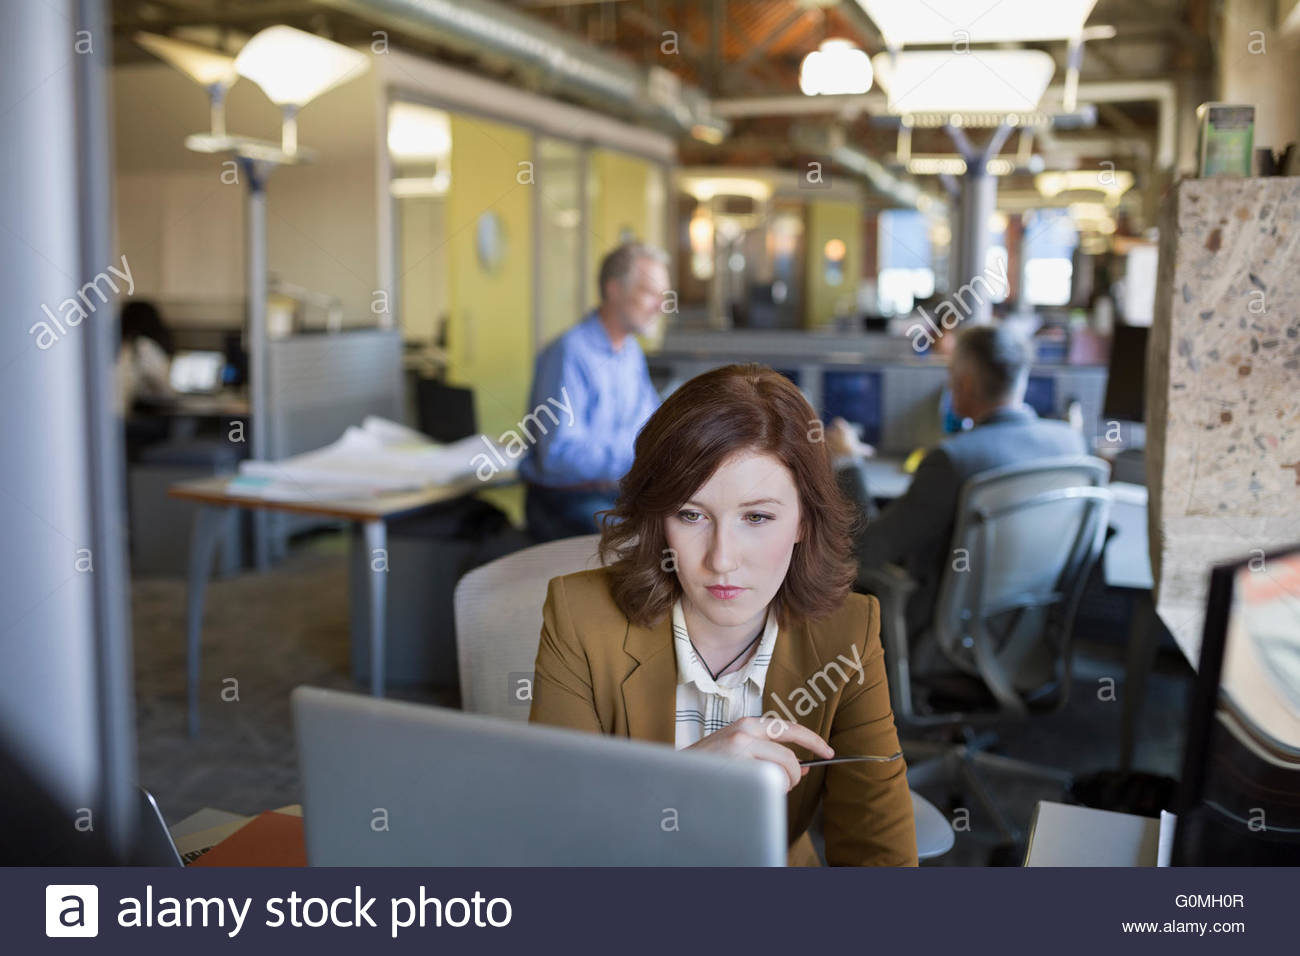 Businesswoman using laptop in office - Stock Image